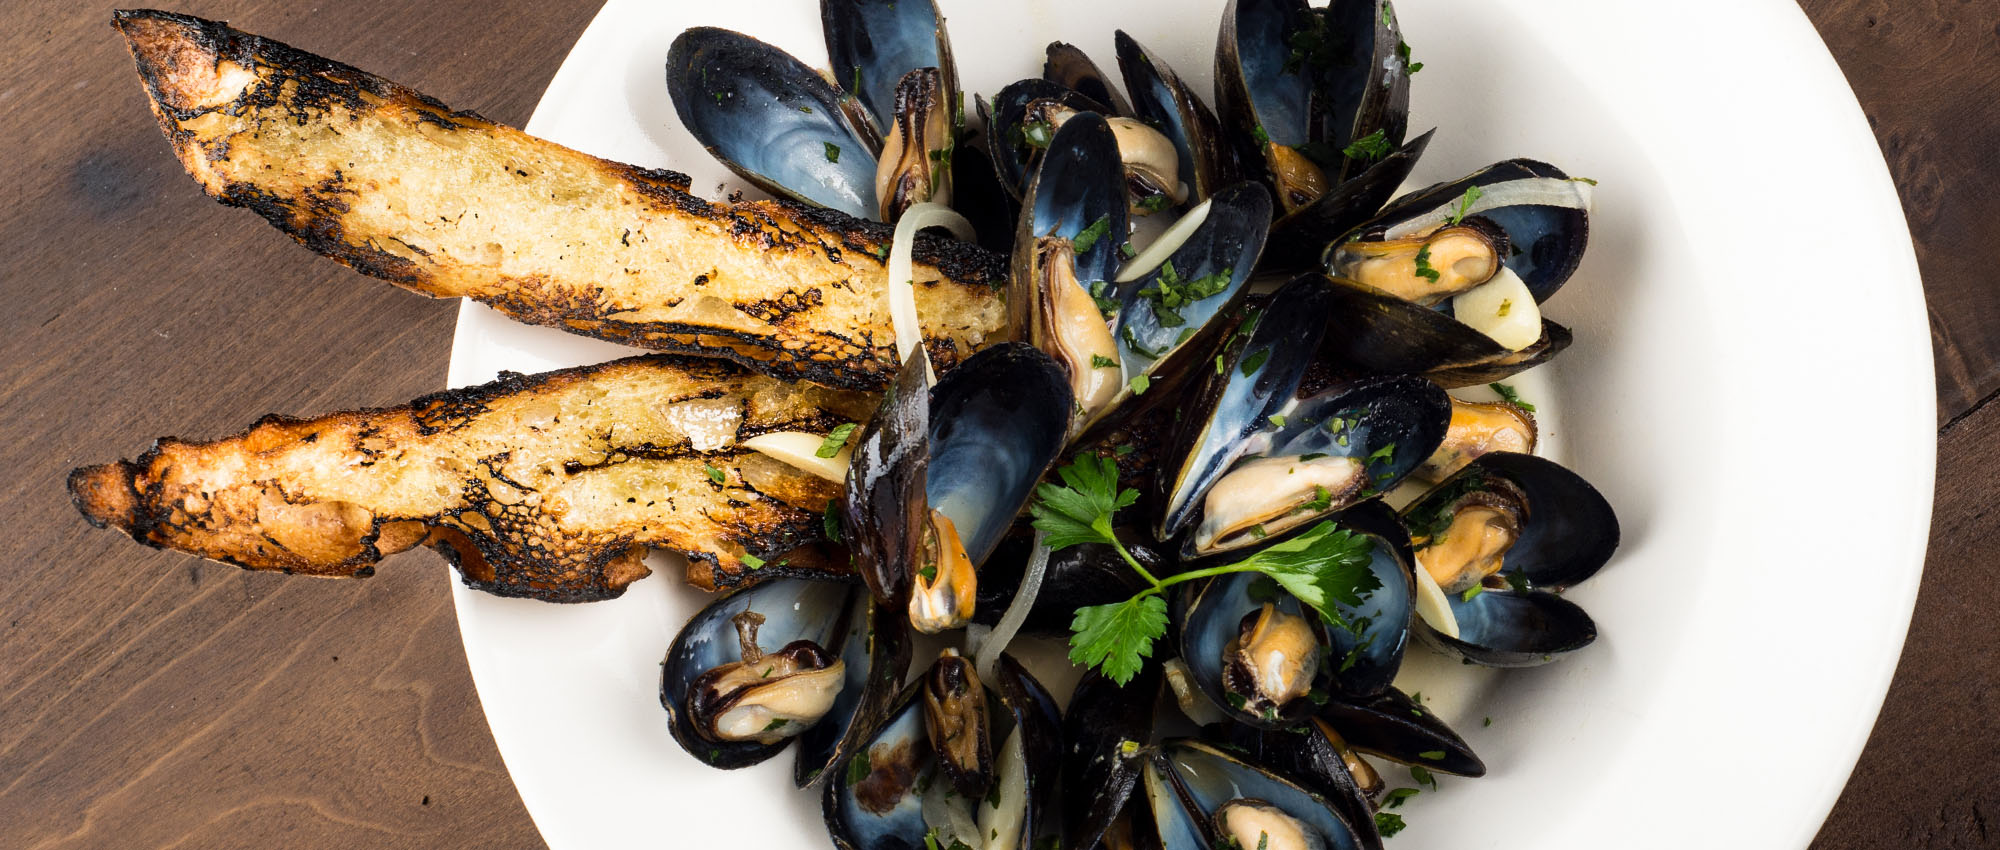 Steamed mussels in sauce